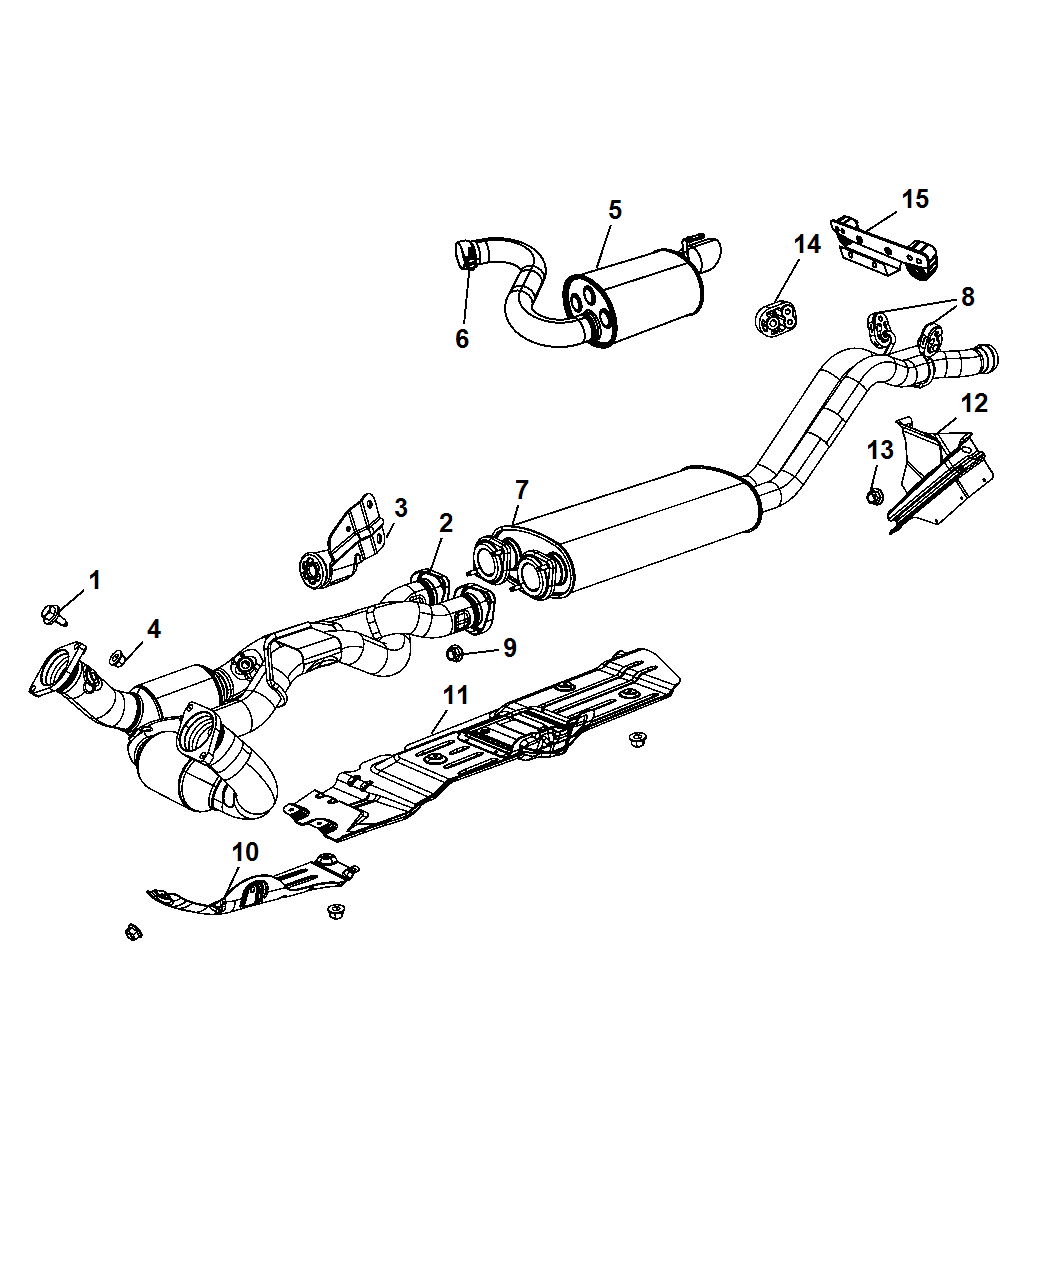 2006 Jeep Grand Cherokee Exhaust System Diagram